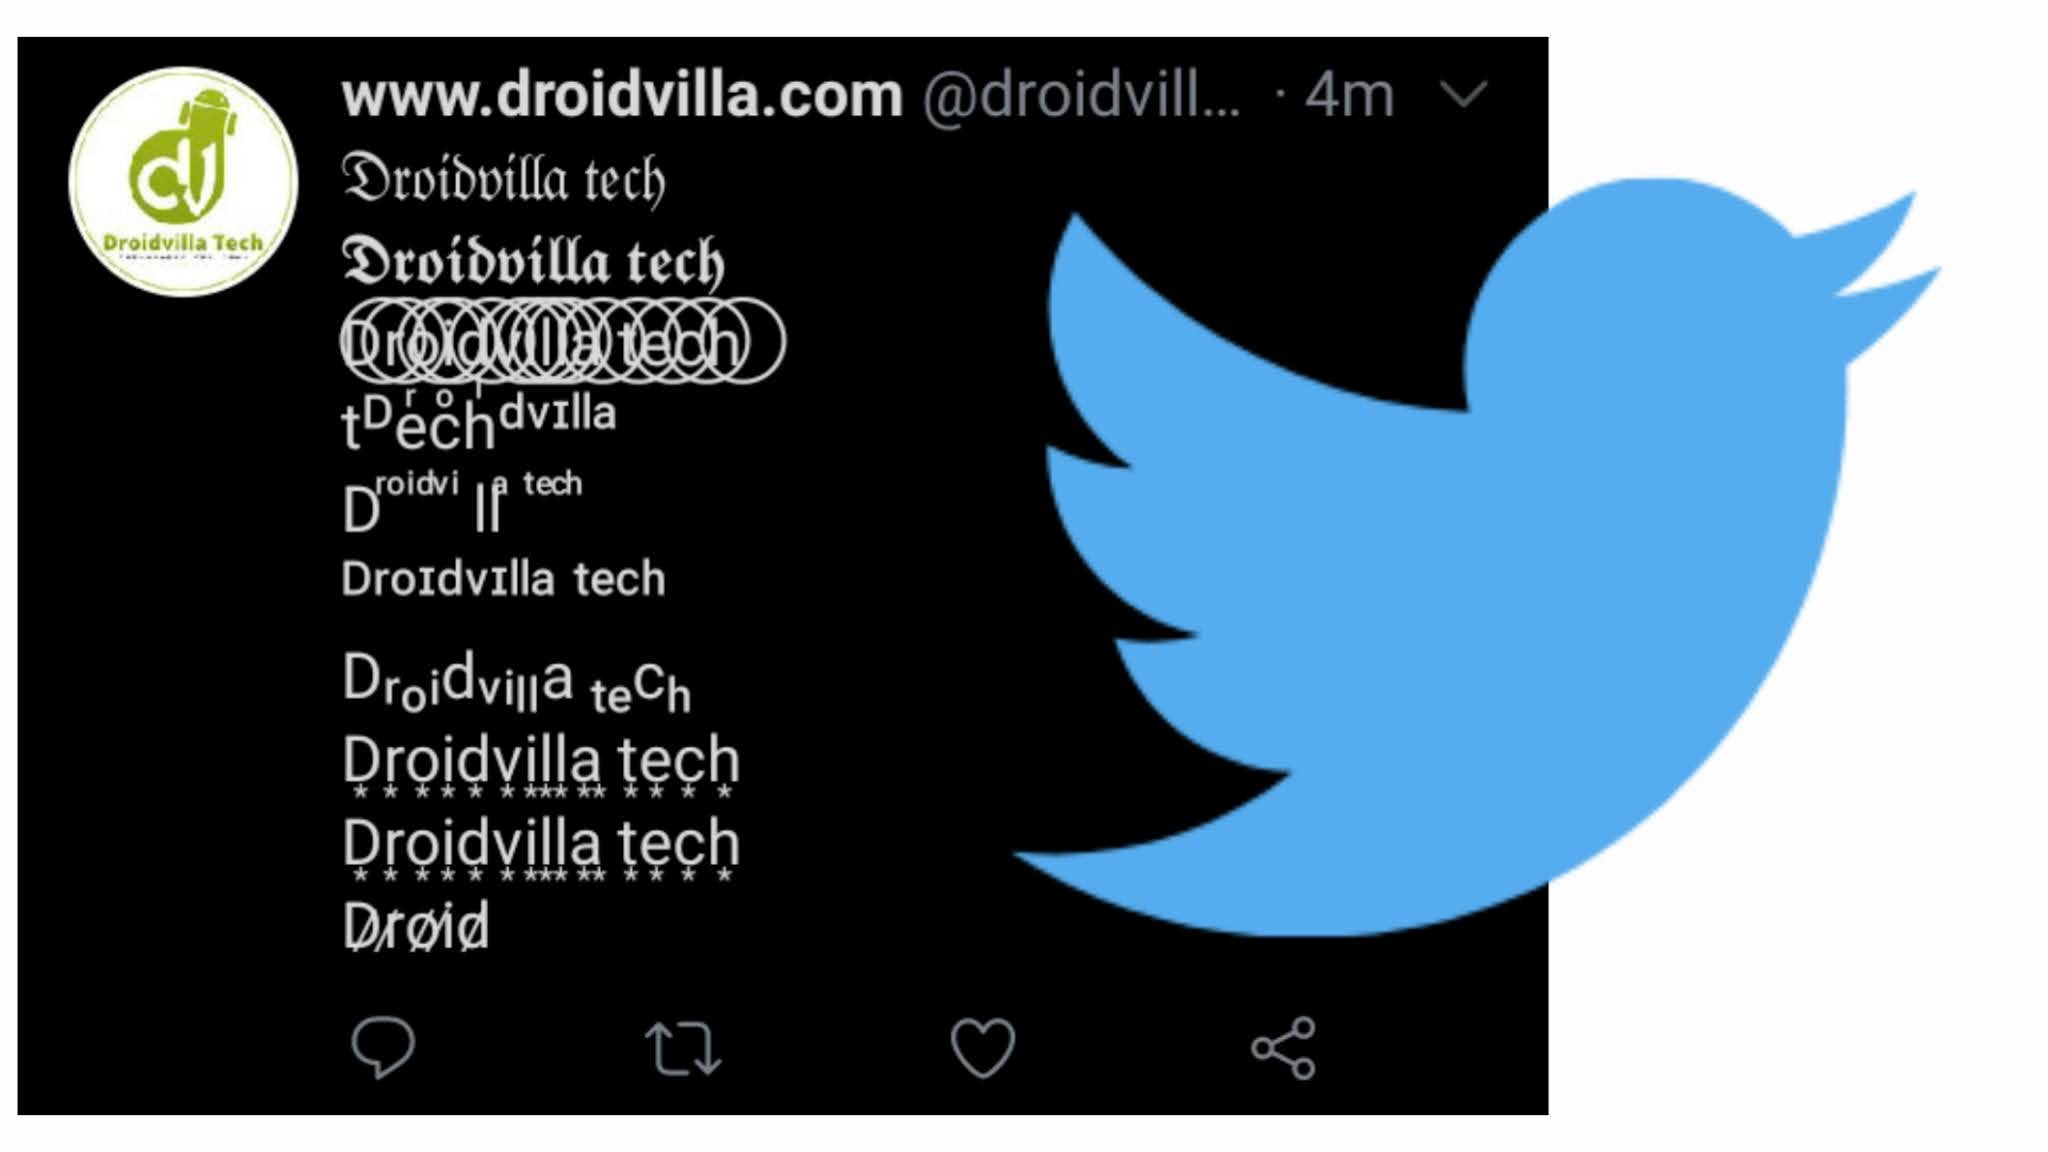 How To Bold Italics Stroke And Fancy Text In Twitter 2020 Droidvilla Technology Solution Android Apk Phone Reviews Technology Updates Tips Tricks Download all the files in the yytext subdirectory. droidvilla